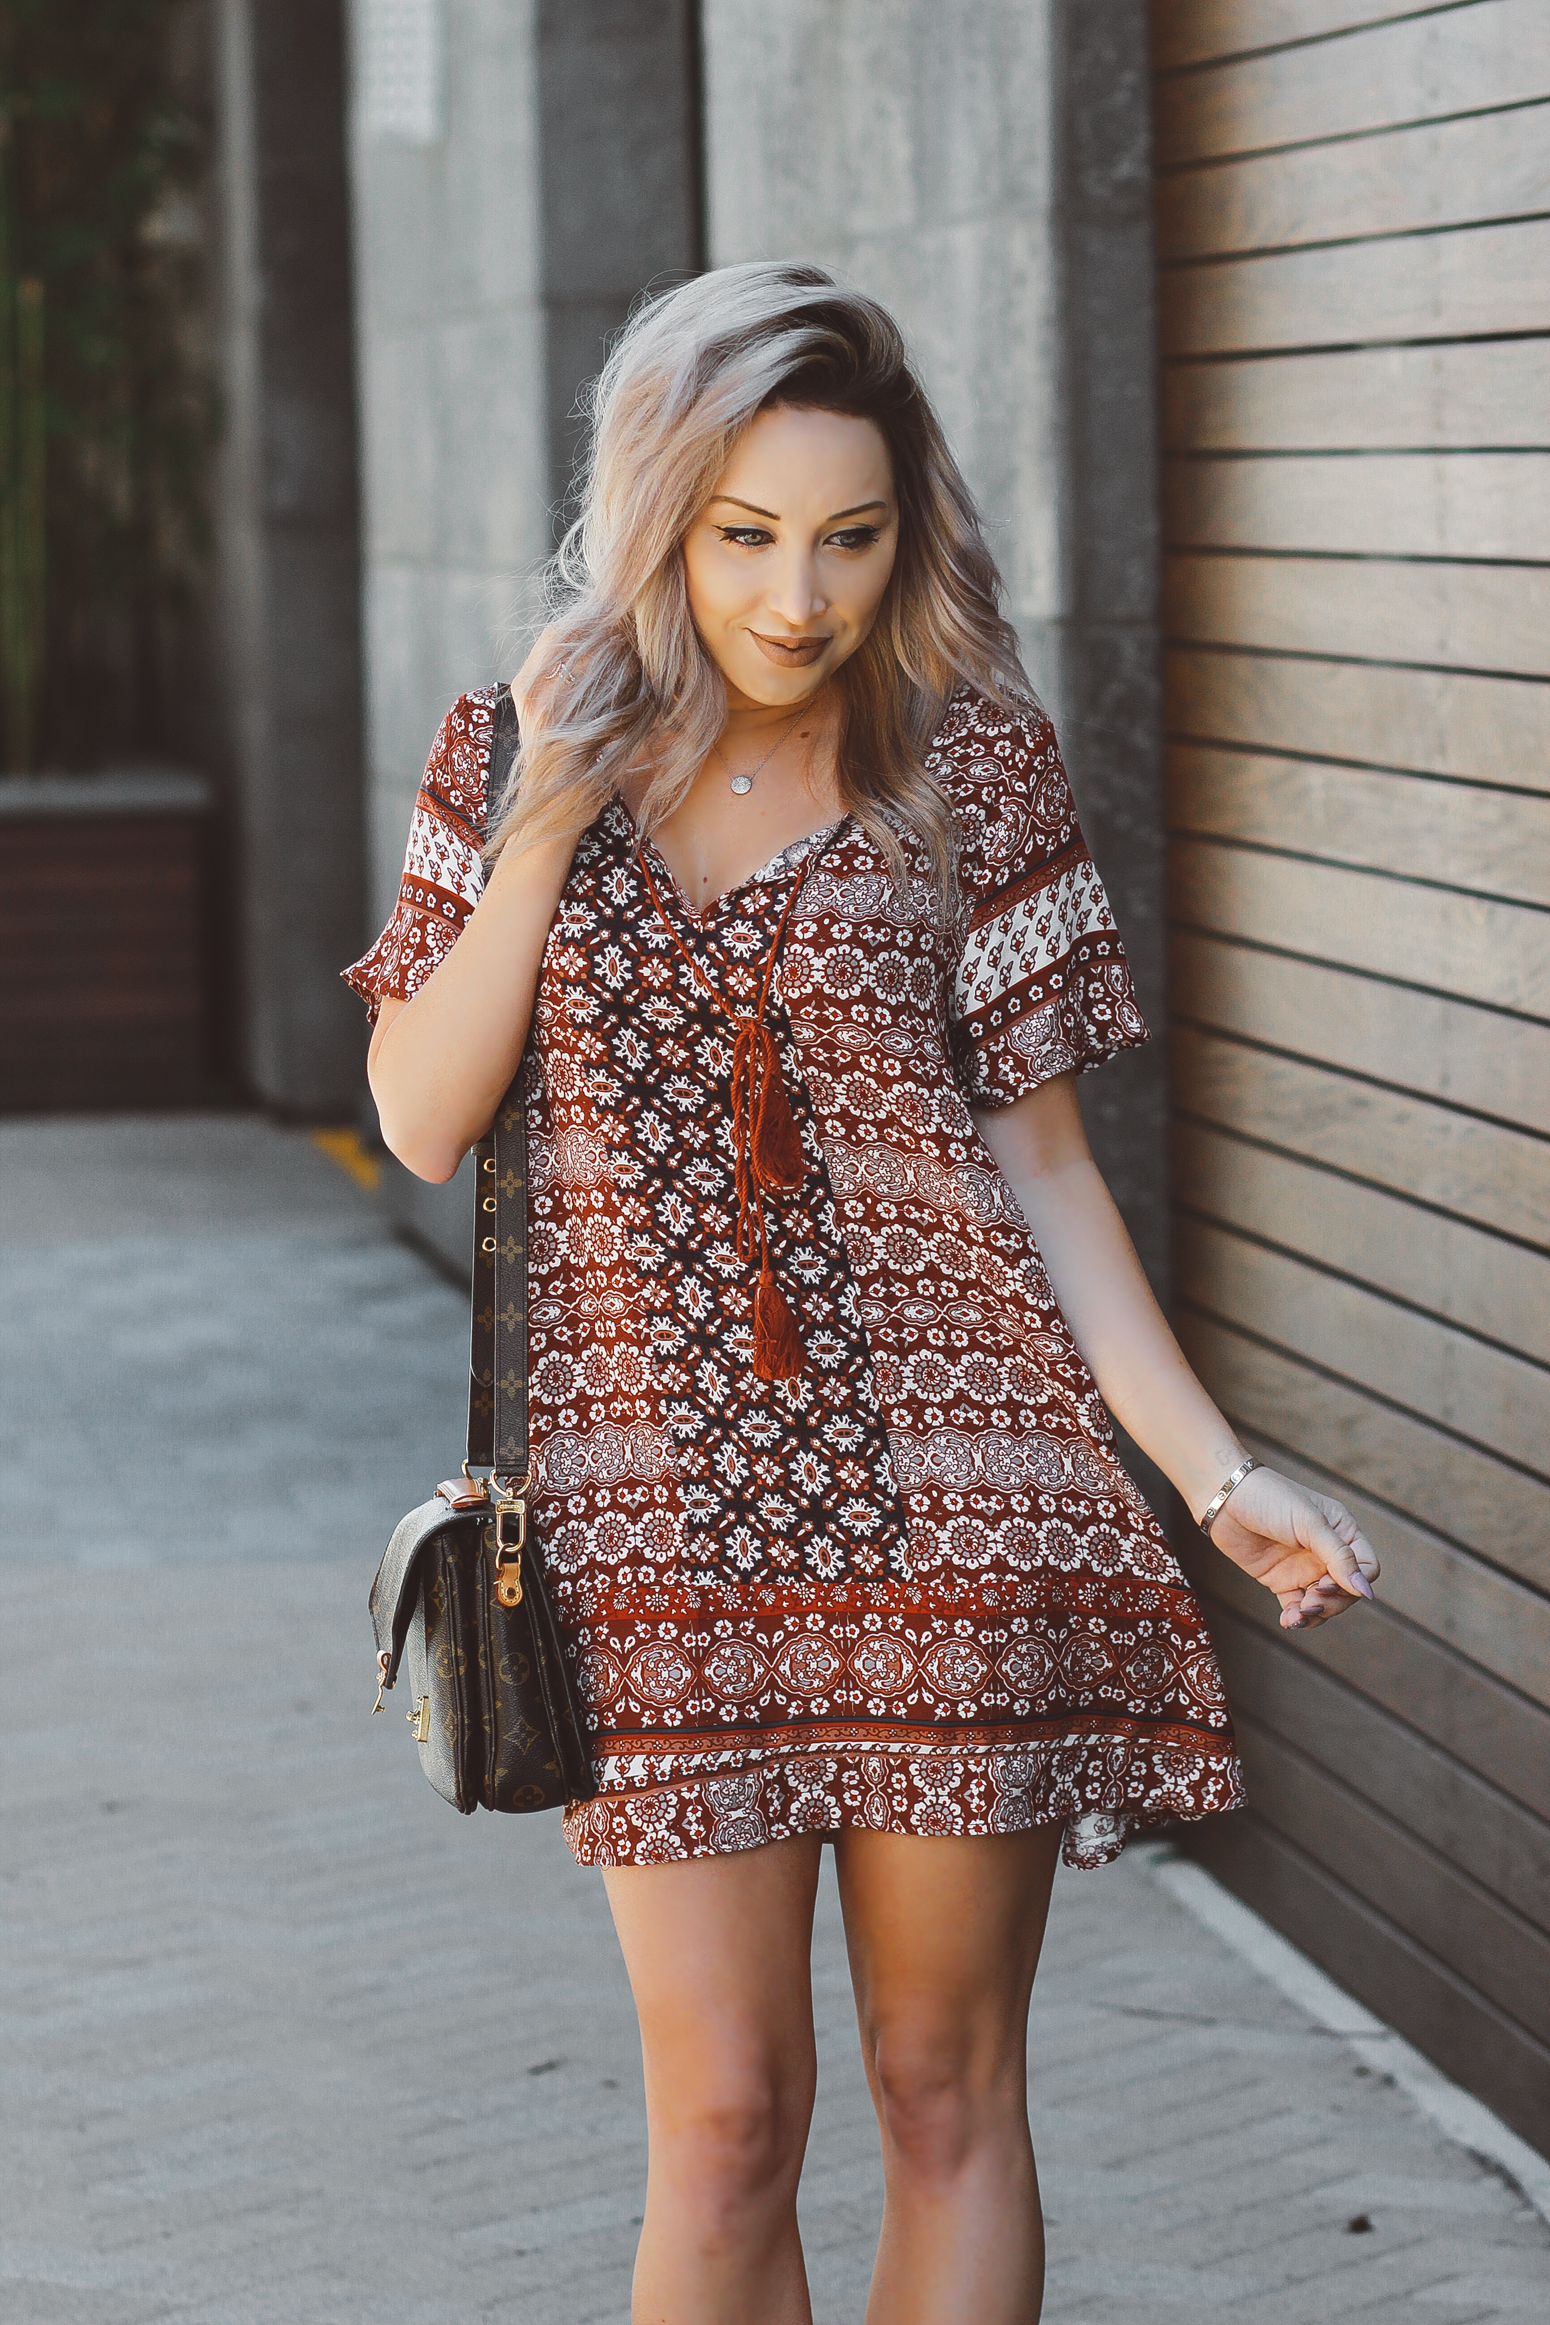 Blondie in the City  |  Flowy Spring & Summer Dress | Louis Vuitton Pochette Metis Bag